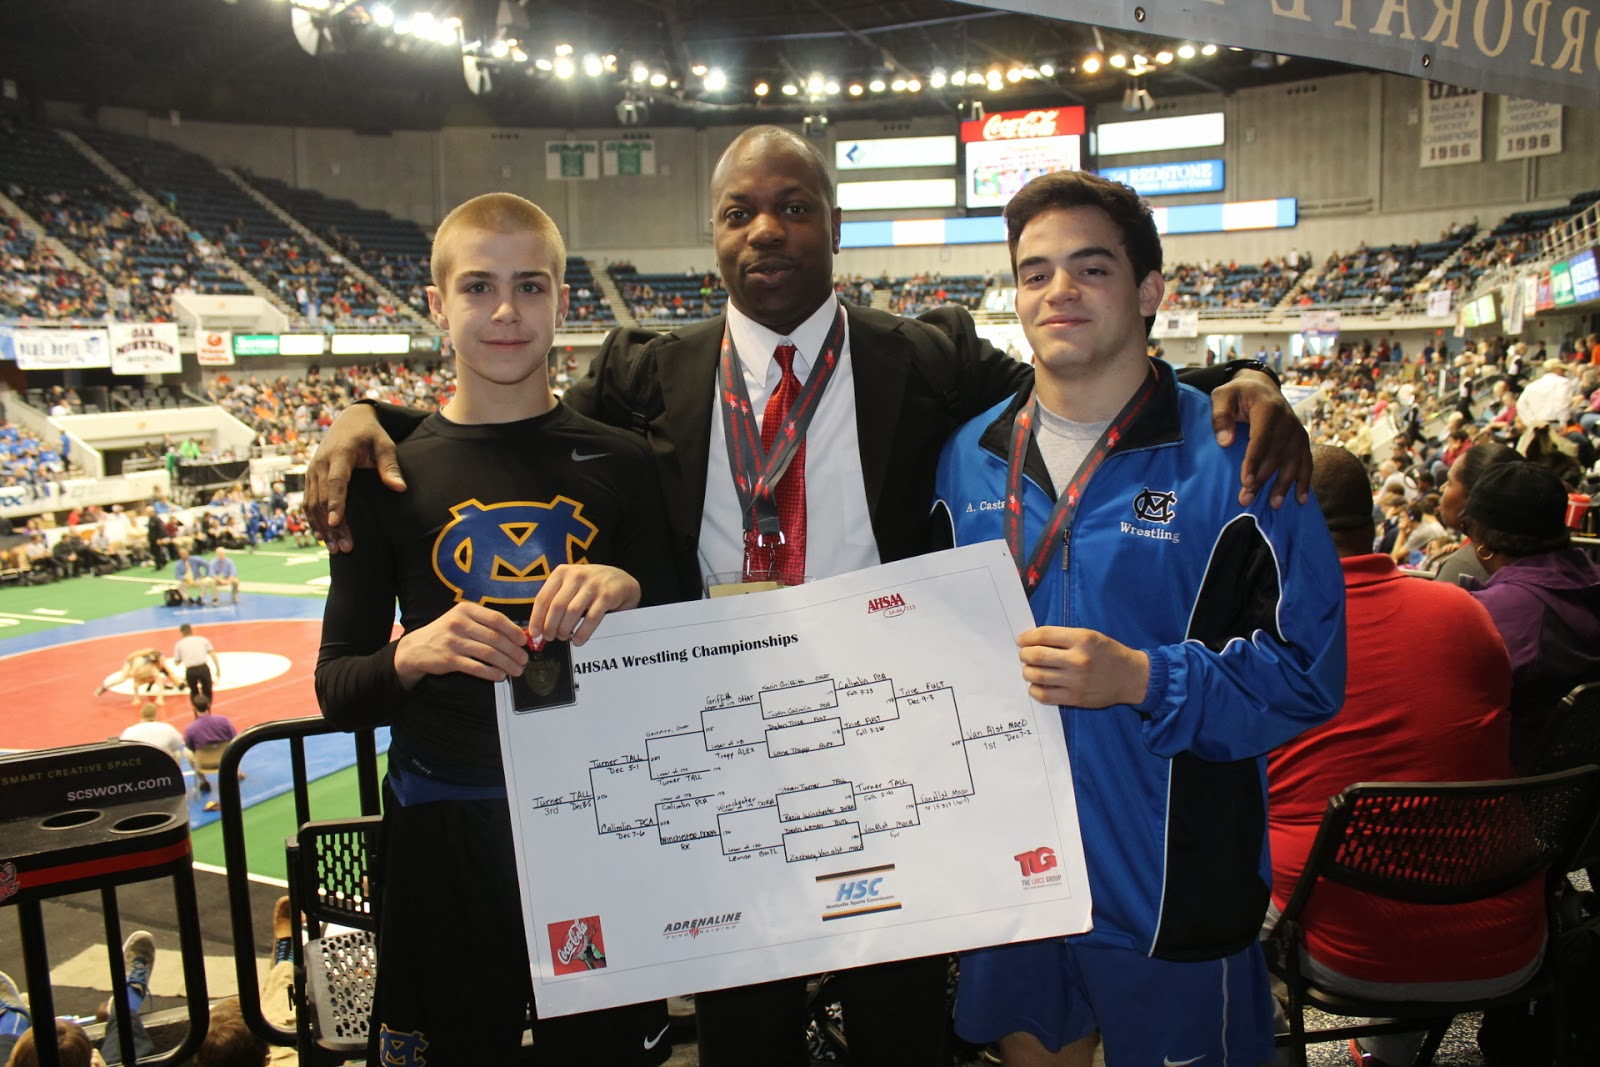 Van Alst Claims Third Consecutive Wrestling State Championship 1